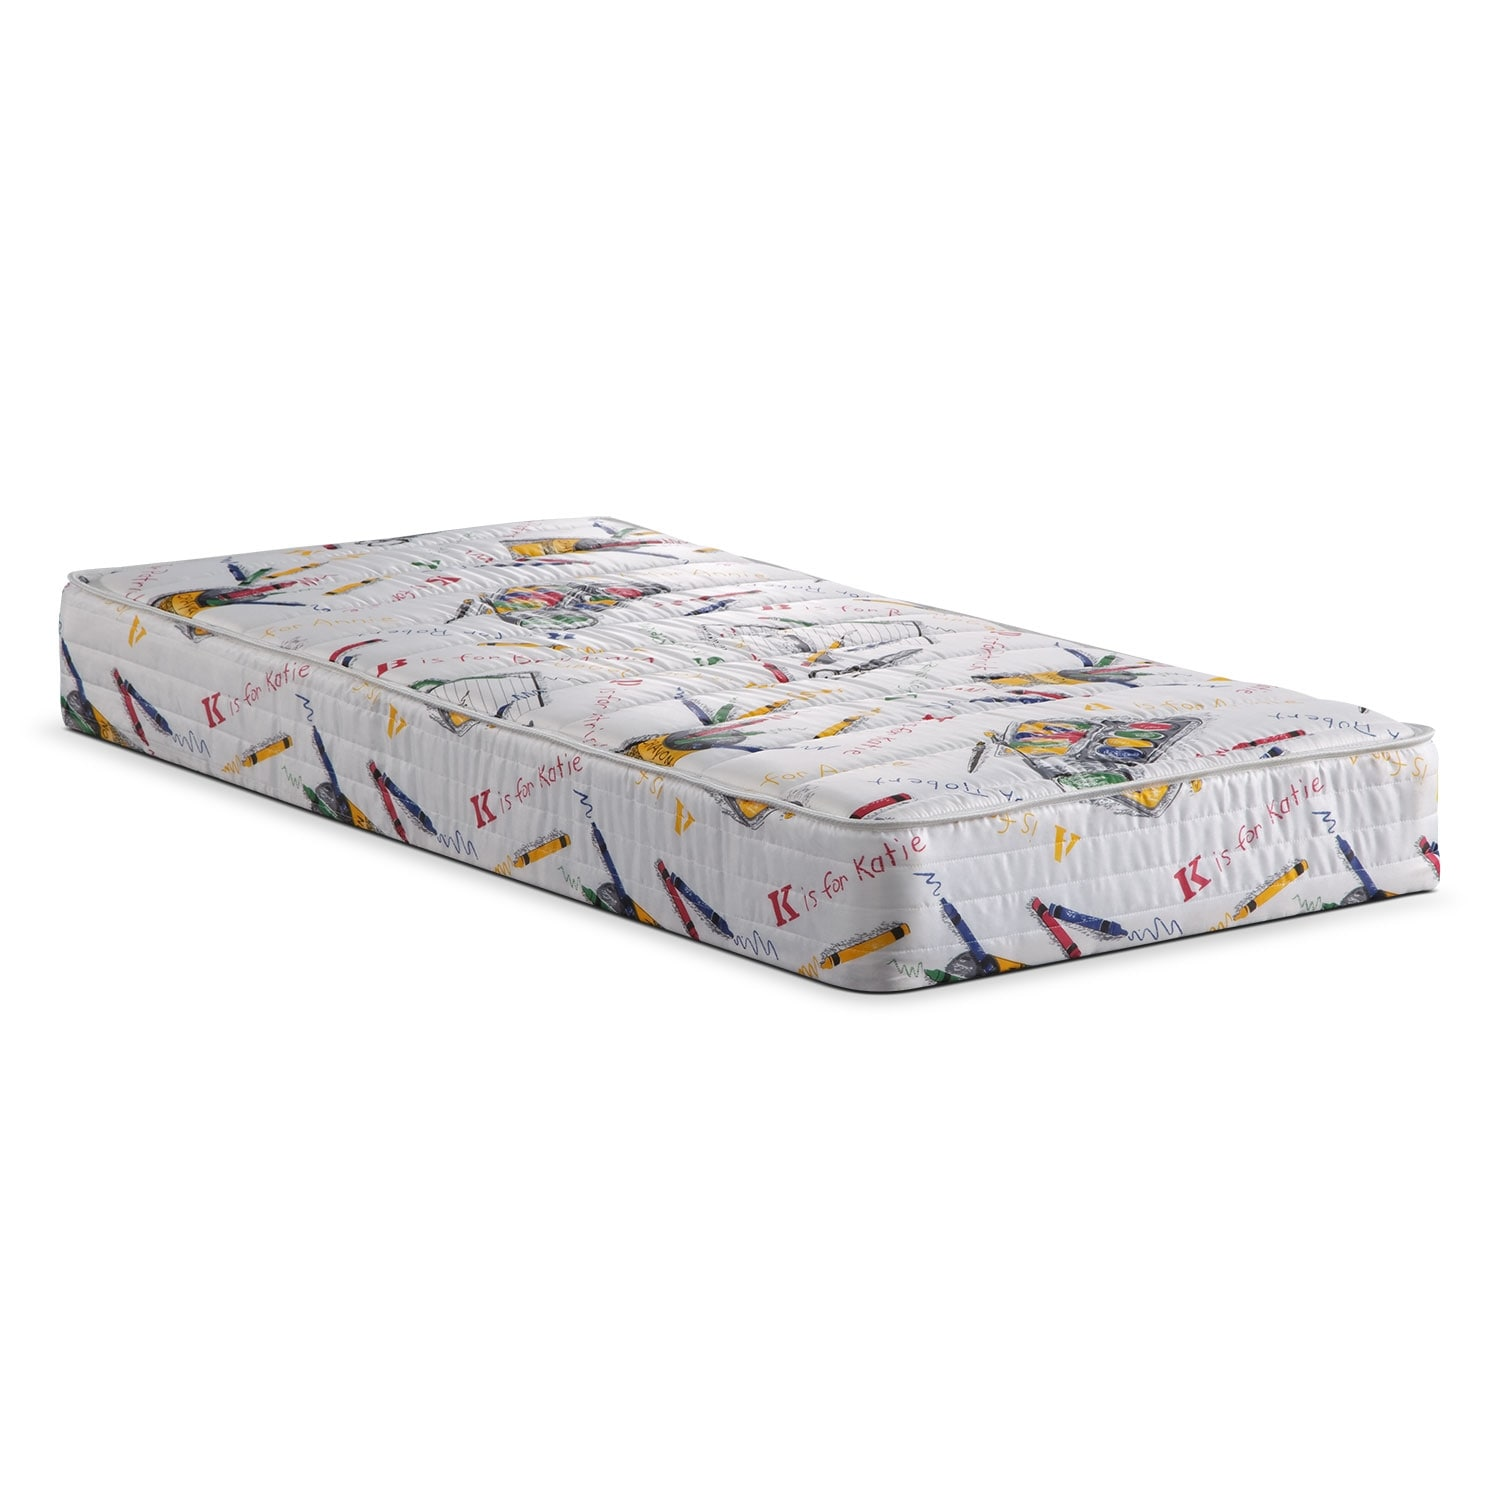 Mattresses and Bedding - Youth Bunkie Mattress